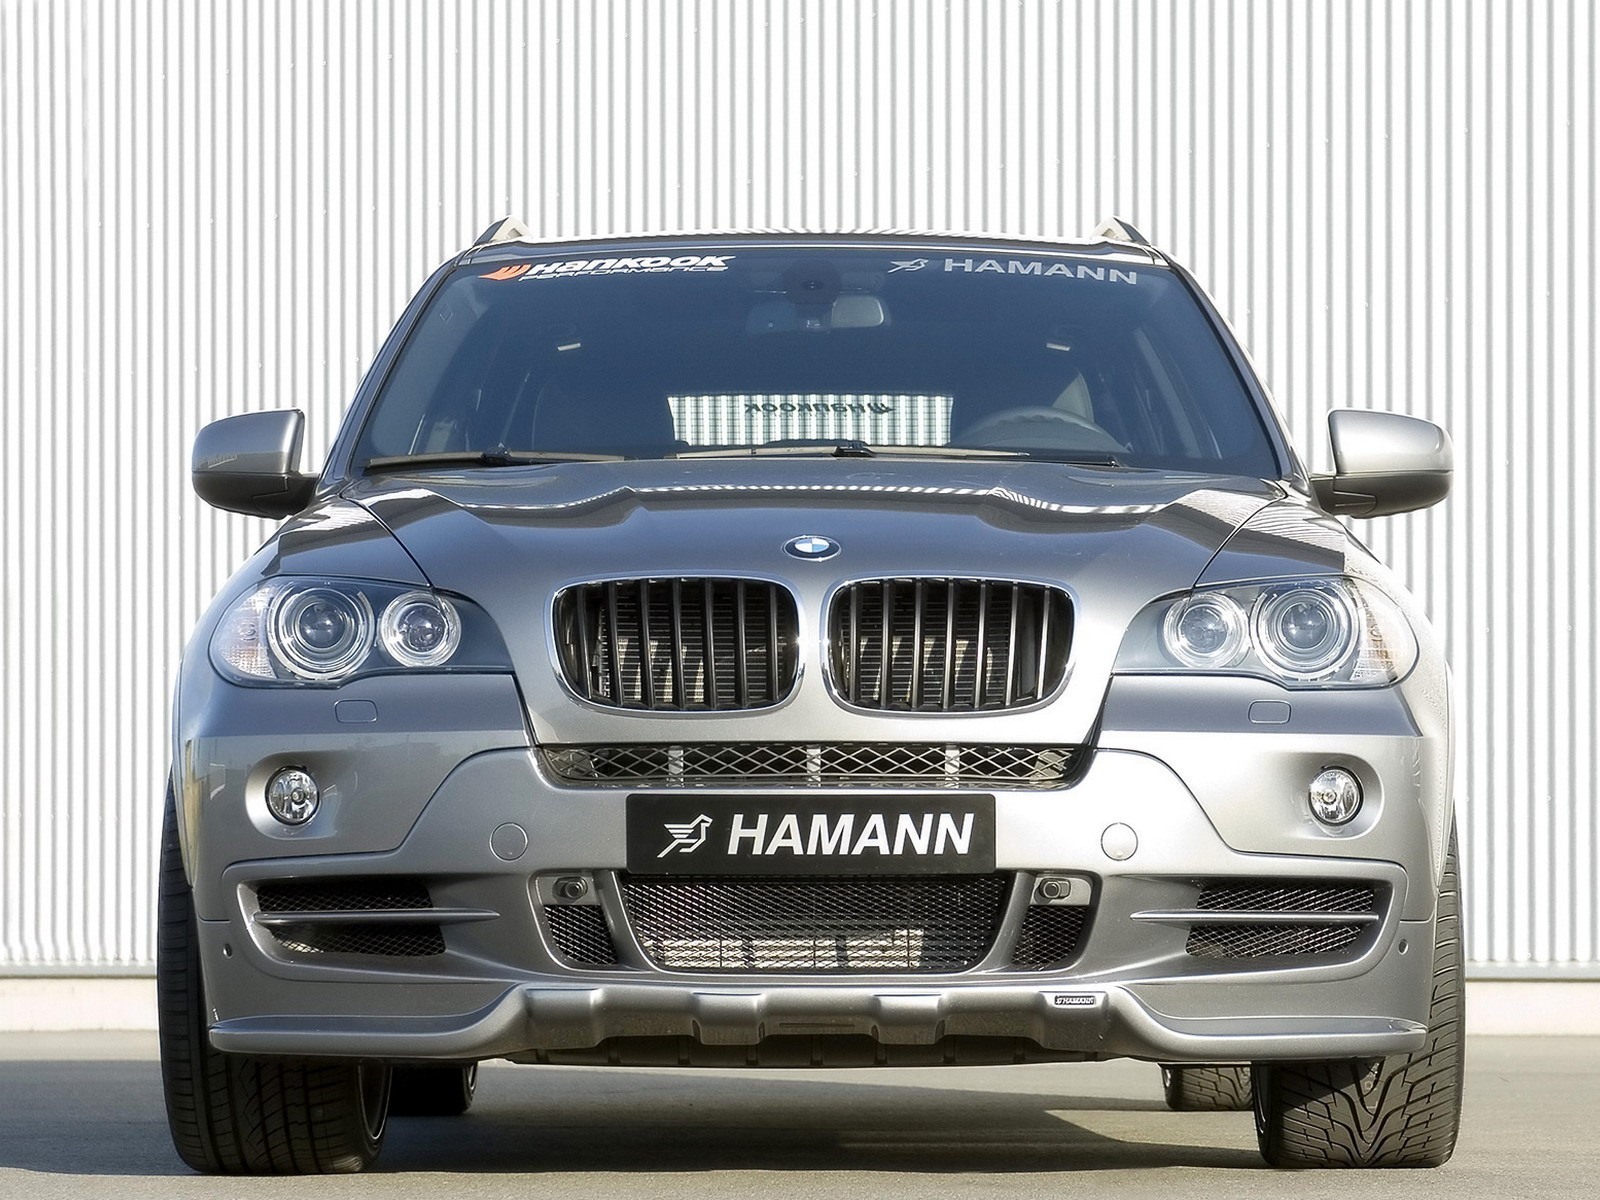 cars vehicles hamann bmw HD Wallpaper